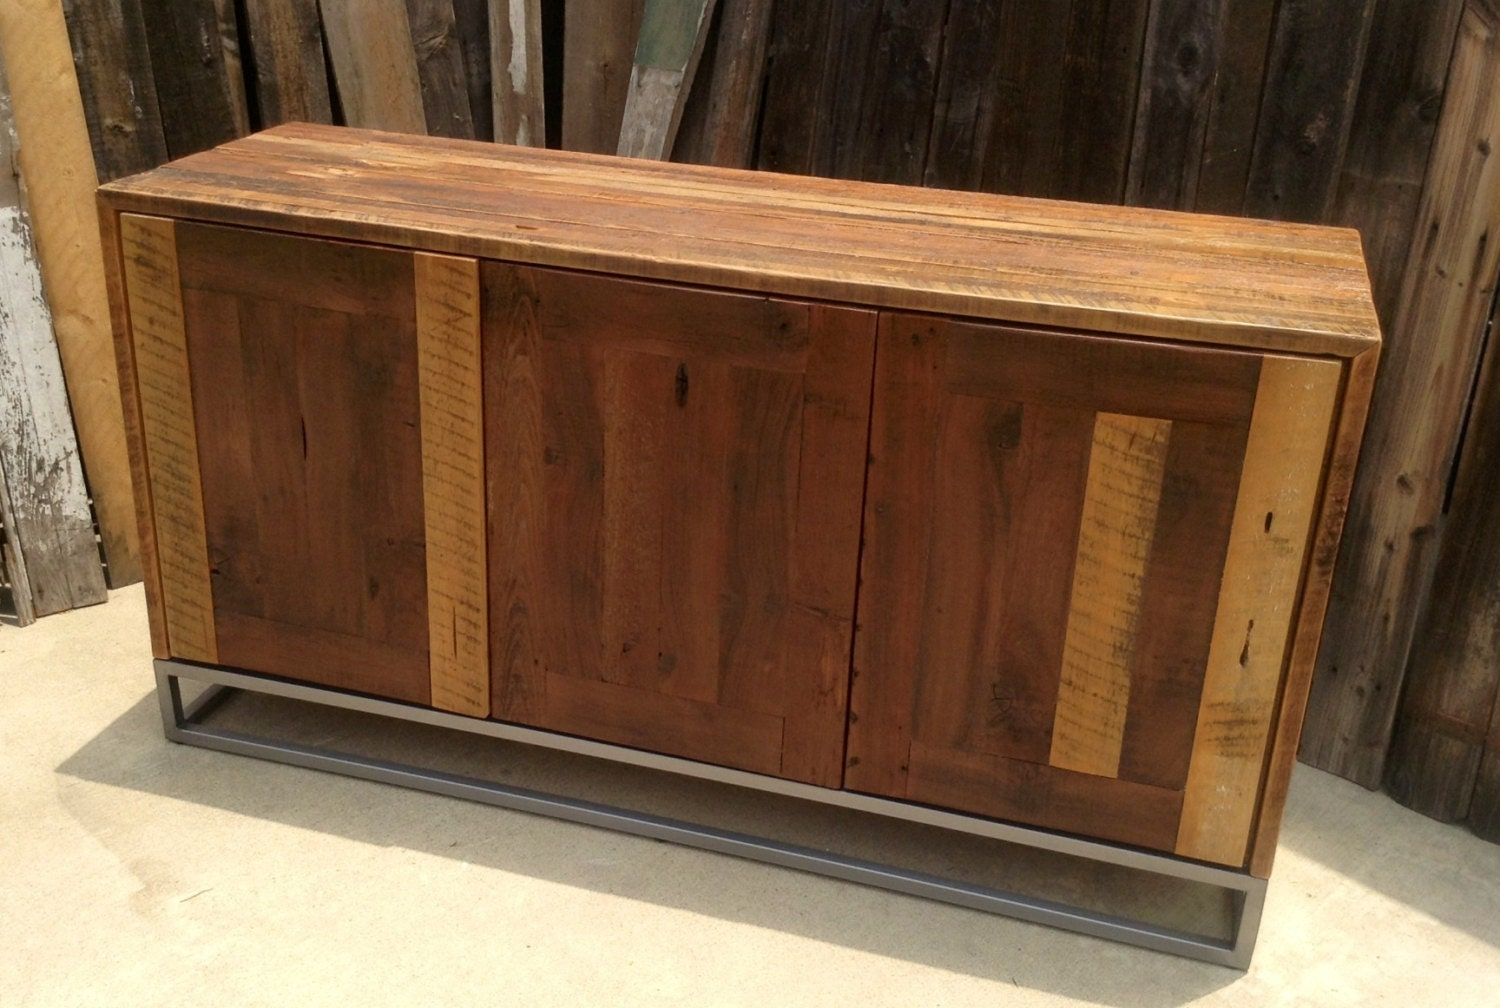 Rustic buffet table furniture - Custom Rustic Modern Industrial Reclaimed Wood Buffet Cabinet Credenza Storage Cabinet Entertainment Center